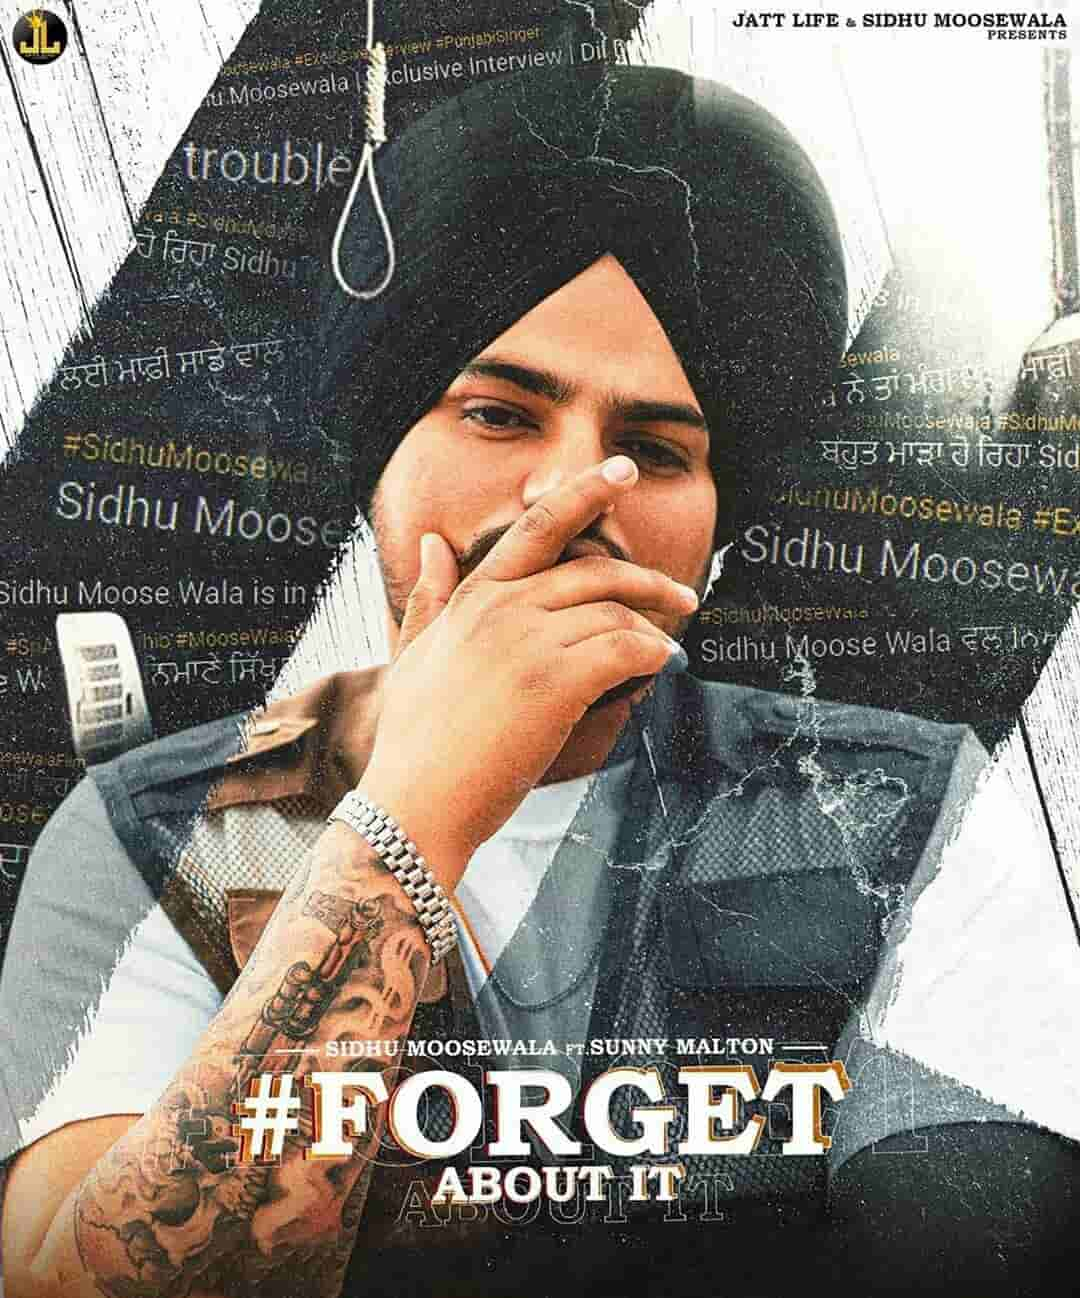 Forget About It Sidhu Moosewala song images